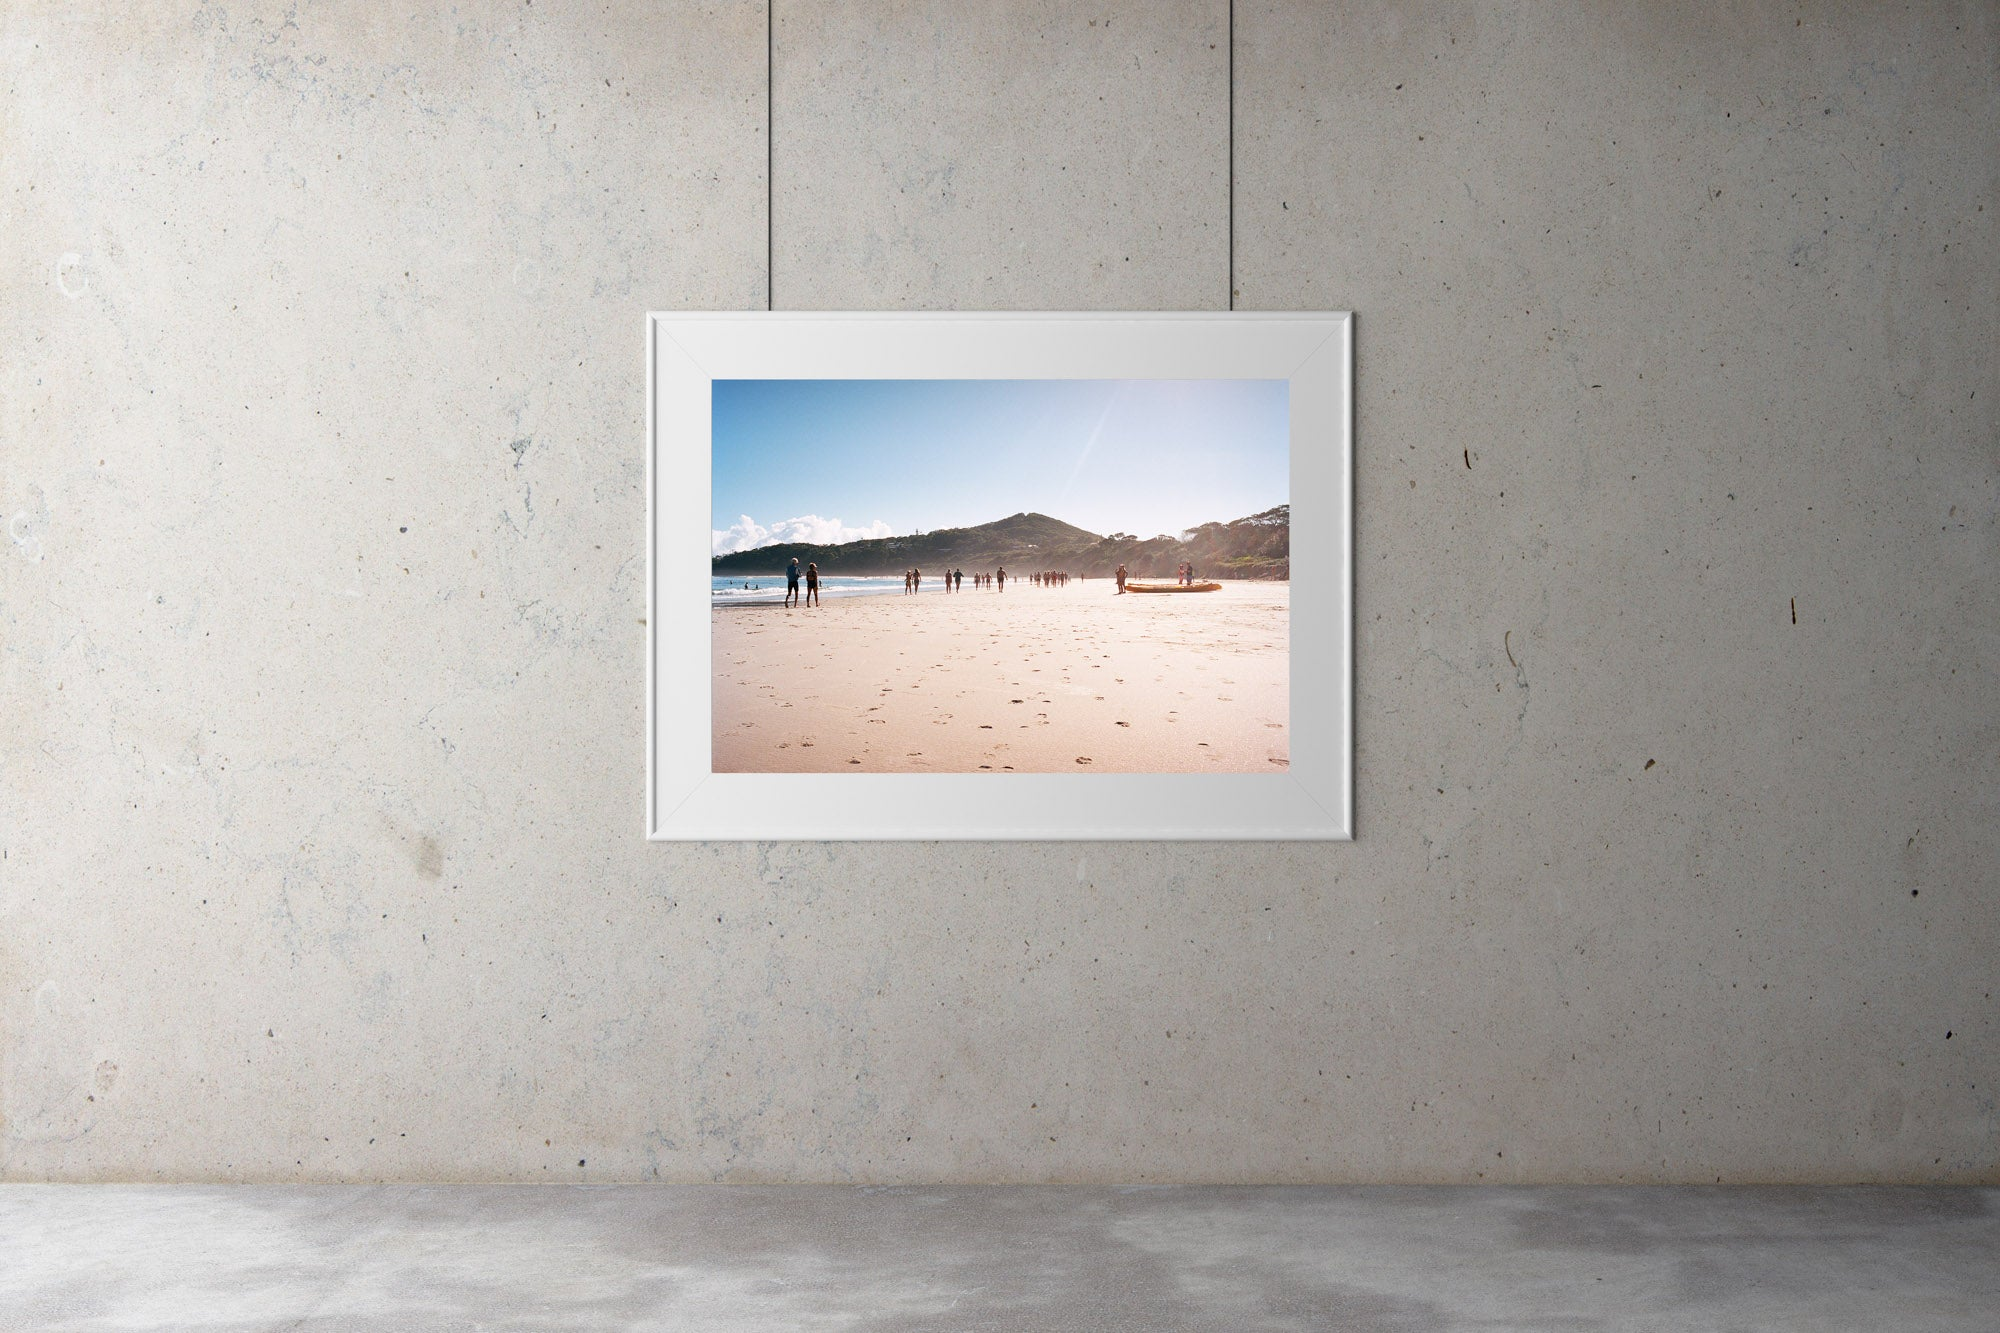 A photography galley with a print on the wall, Byron bay beach with people walking in the distance, blue calm water, blue sky. Two men on a kayak head to the water, Artwork Prints, wall art, Melbourne travel,  Photographic prints,  Framed artwork,  Australian  Photography, wall art, beach prints, coastal prints, ocean prints,  Film photography, Vintage photo, style  Interior design, Pictures Abstract film photography, photography art, Australia, sun, beach, Byron bay,